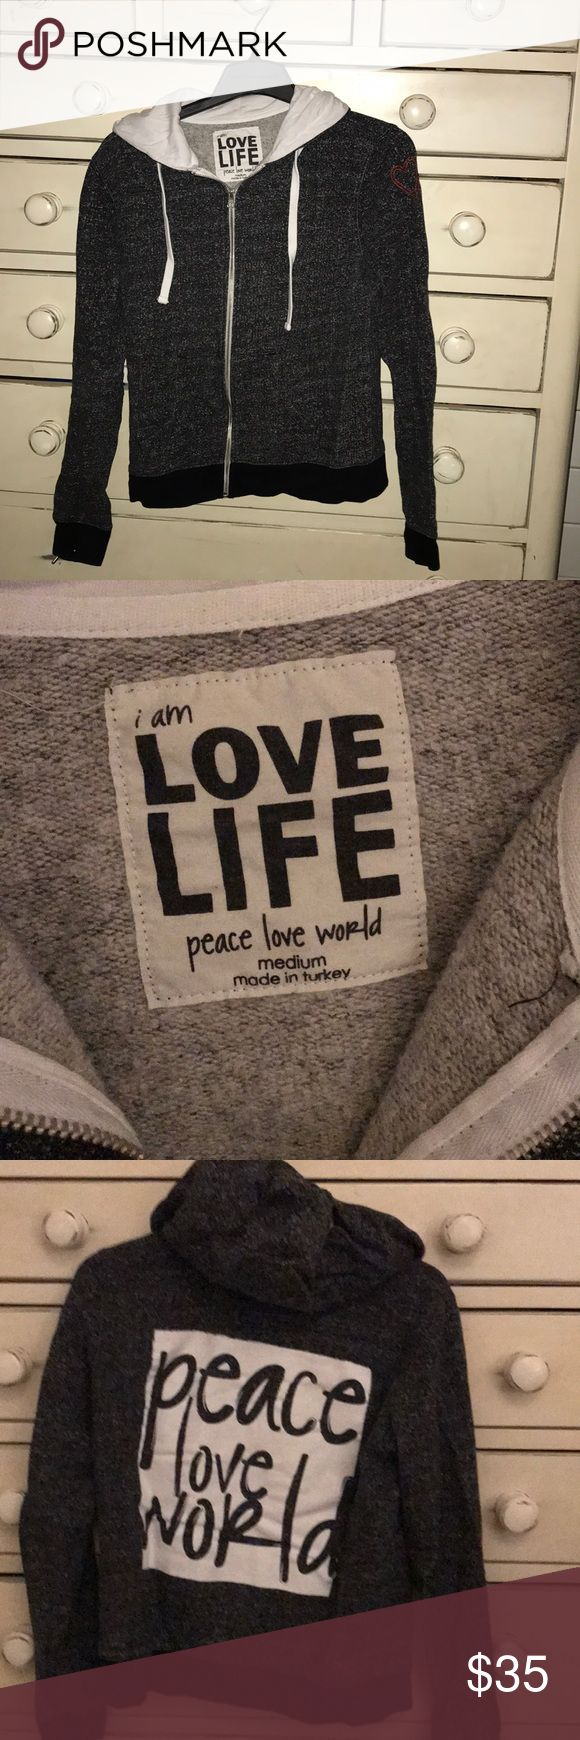 Peace Love World hoodie Style up and look great heading to the gym or just to spend the day relaxing around town or home.  Zip up with thumb holes on the sleeves to be extra special. Make a peace love world statement! Peace Love World Tops Sweatshirts & Hoodies